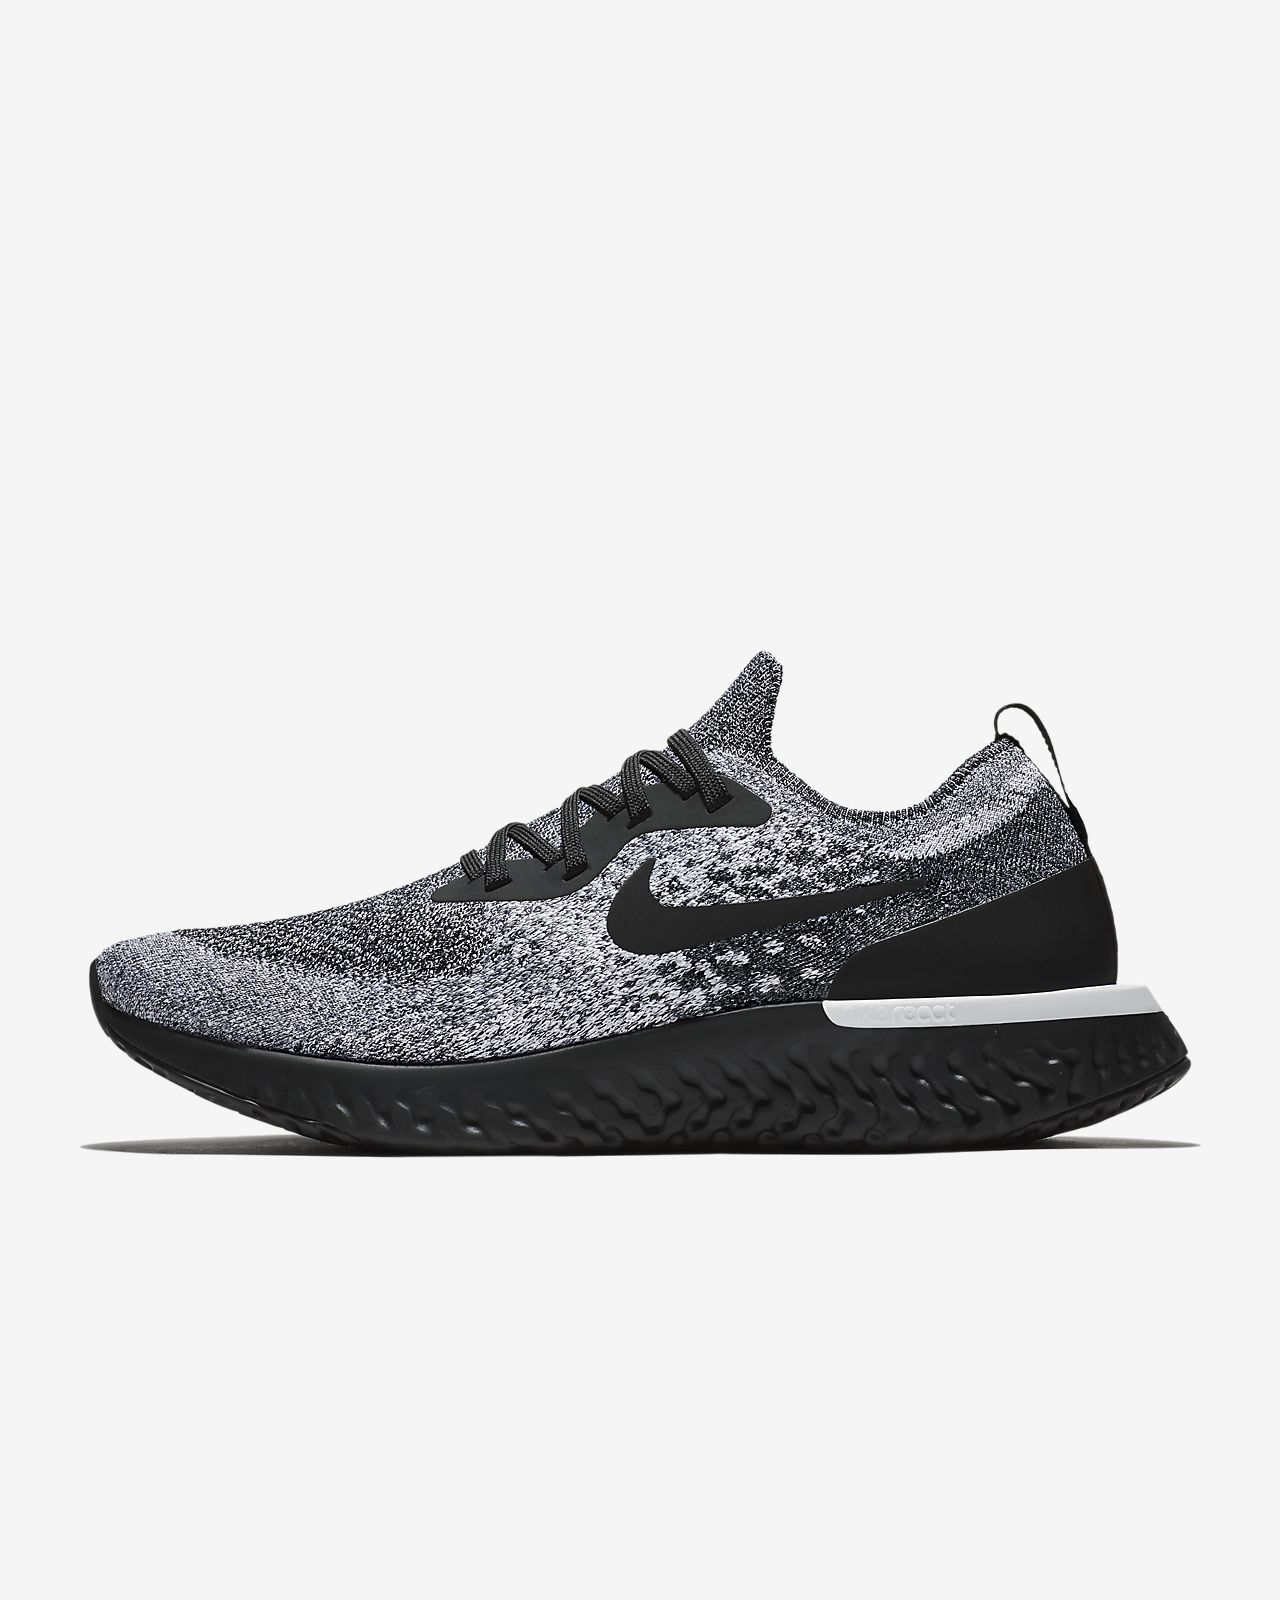 88a33f0c9a353 Nike Epic React Flyknit Men s Running Shoe. Nike.com SG